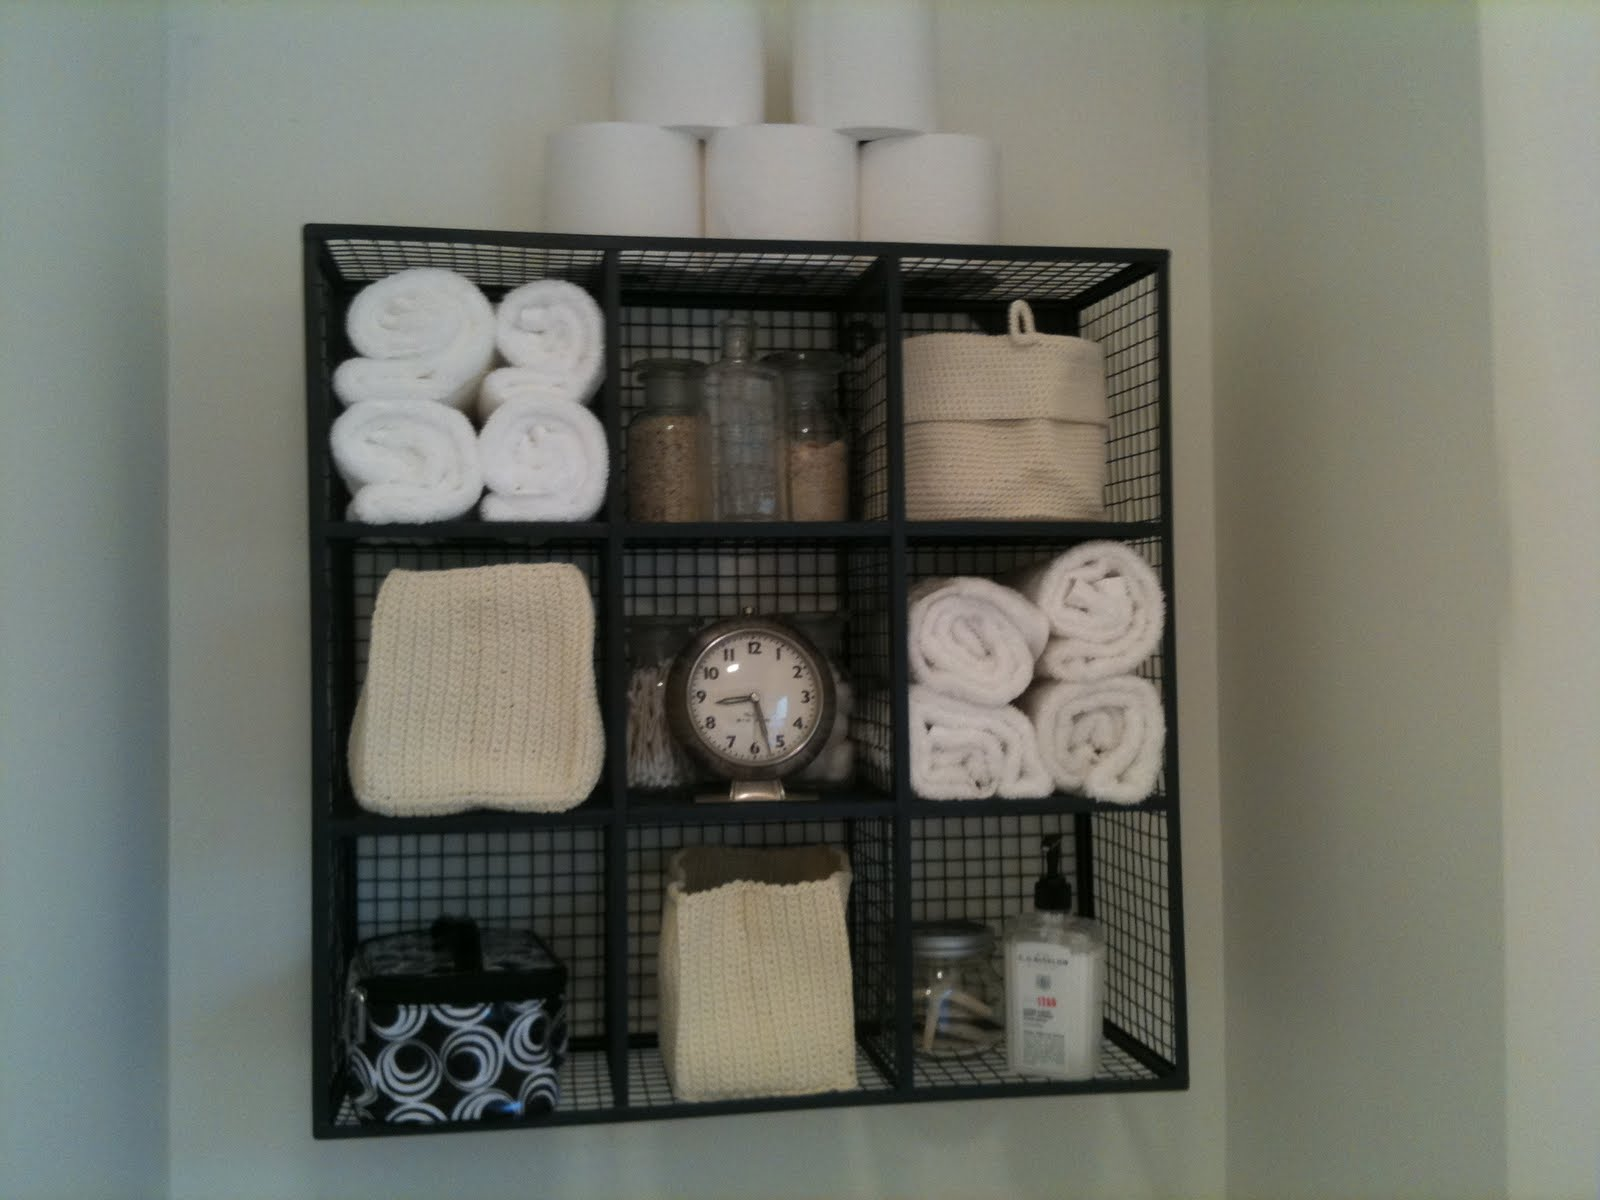 Distinguished Above Toilet Storage Ideas Over Toilet Storage Ideas Over Toilet Storage Ladder Over Toilet Storage Bamboo houzz-03 Over The Toilet Storage